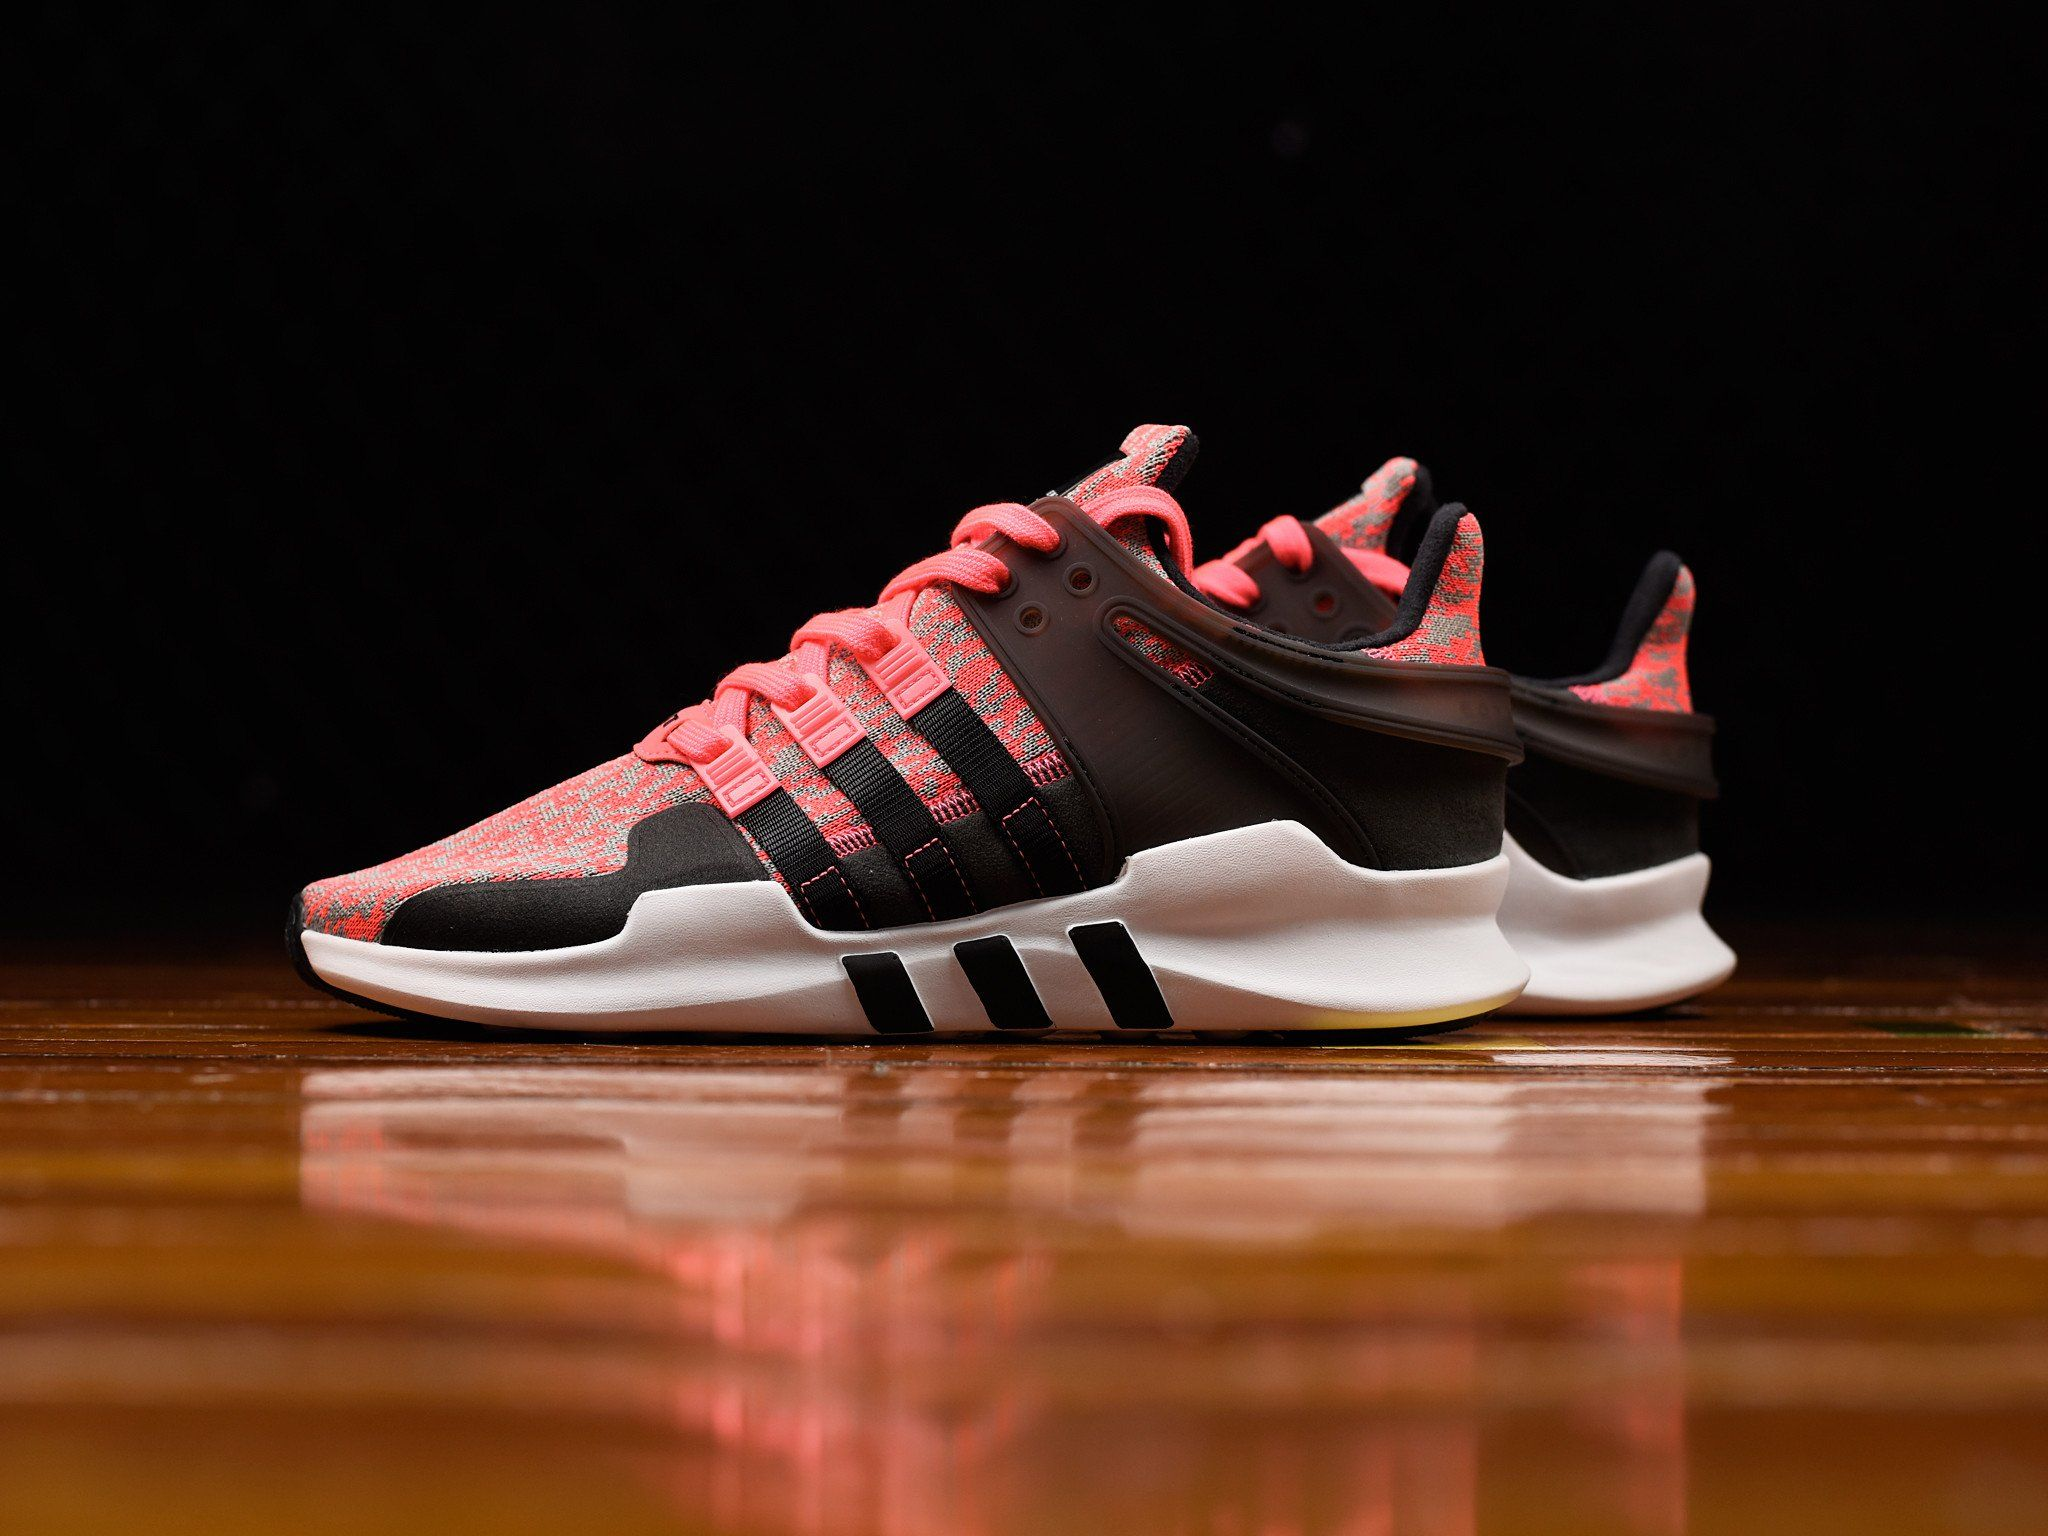 new product 457fb cd4a2 Men s Adidas EQT Support ADV  Turbo Glitch   CG2950